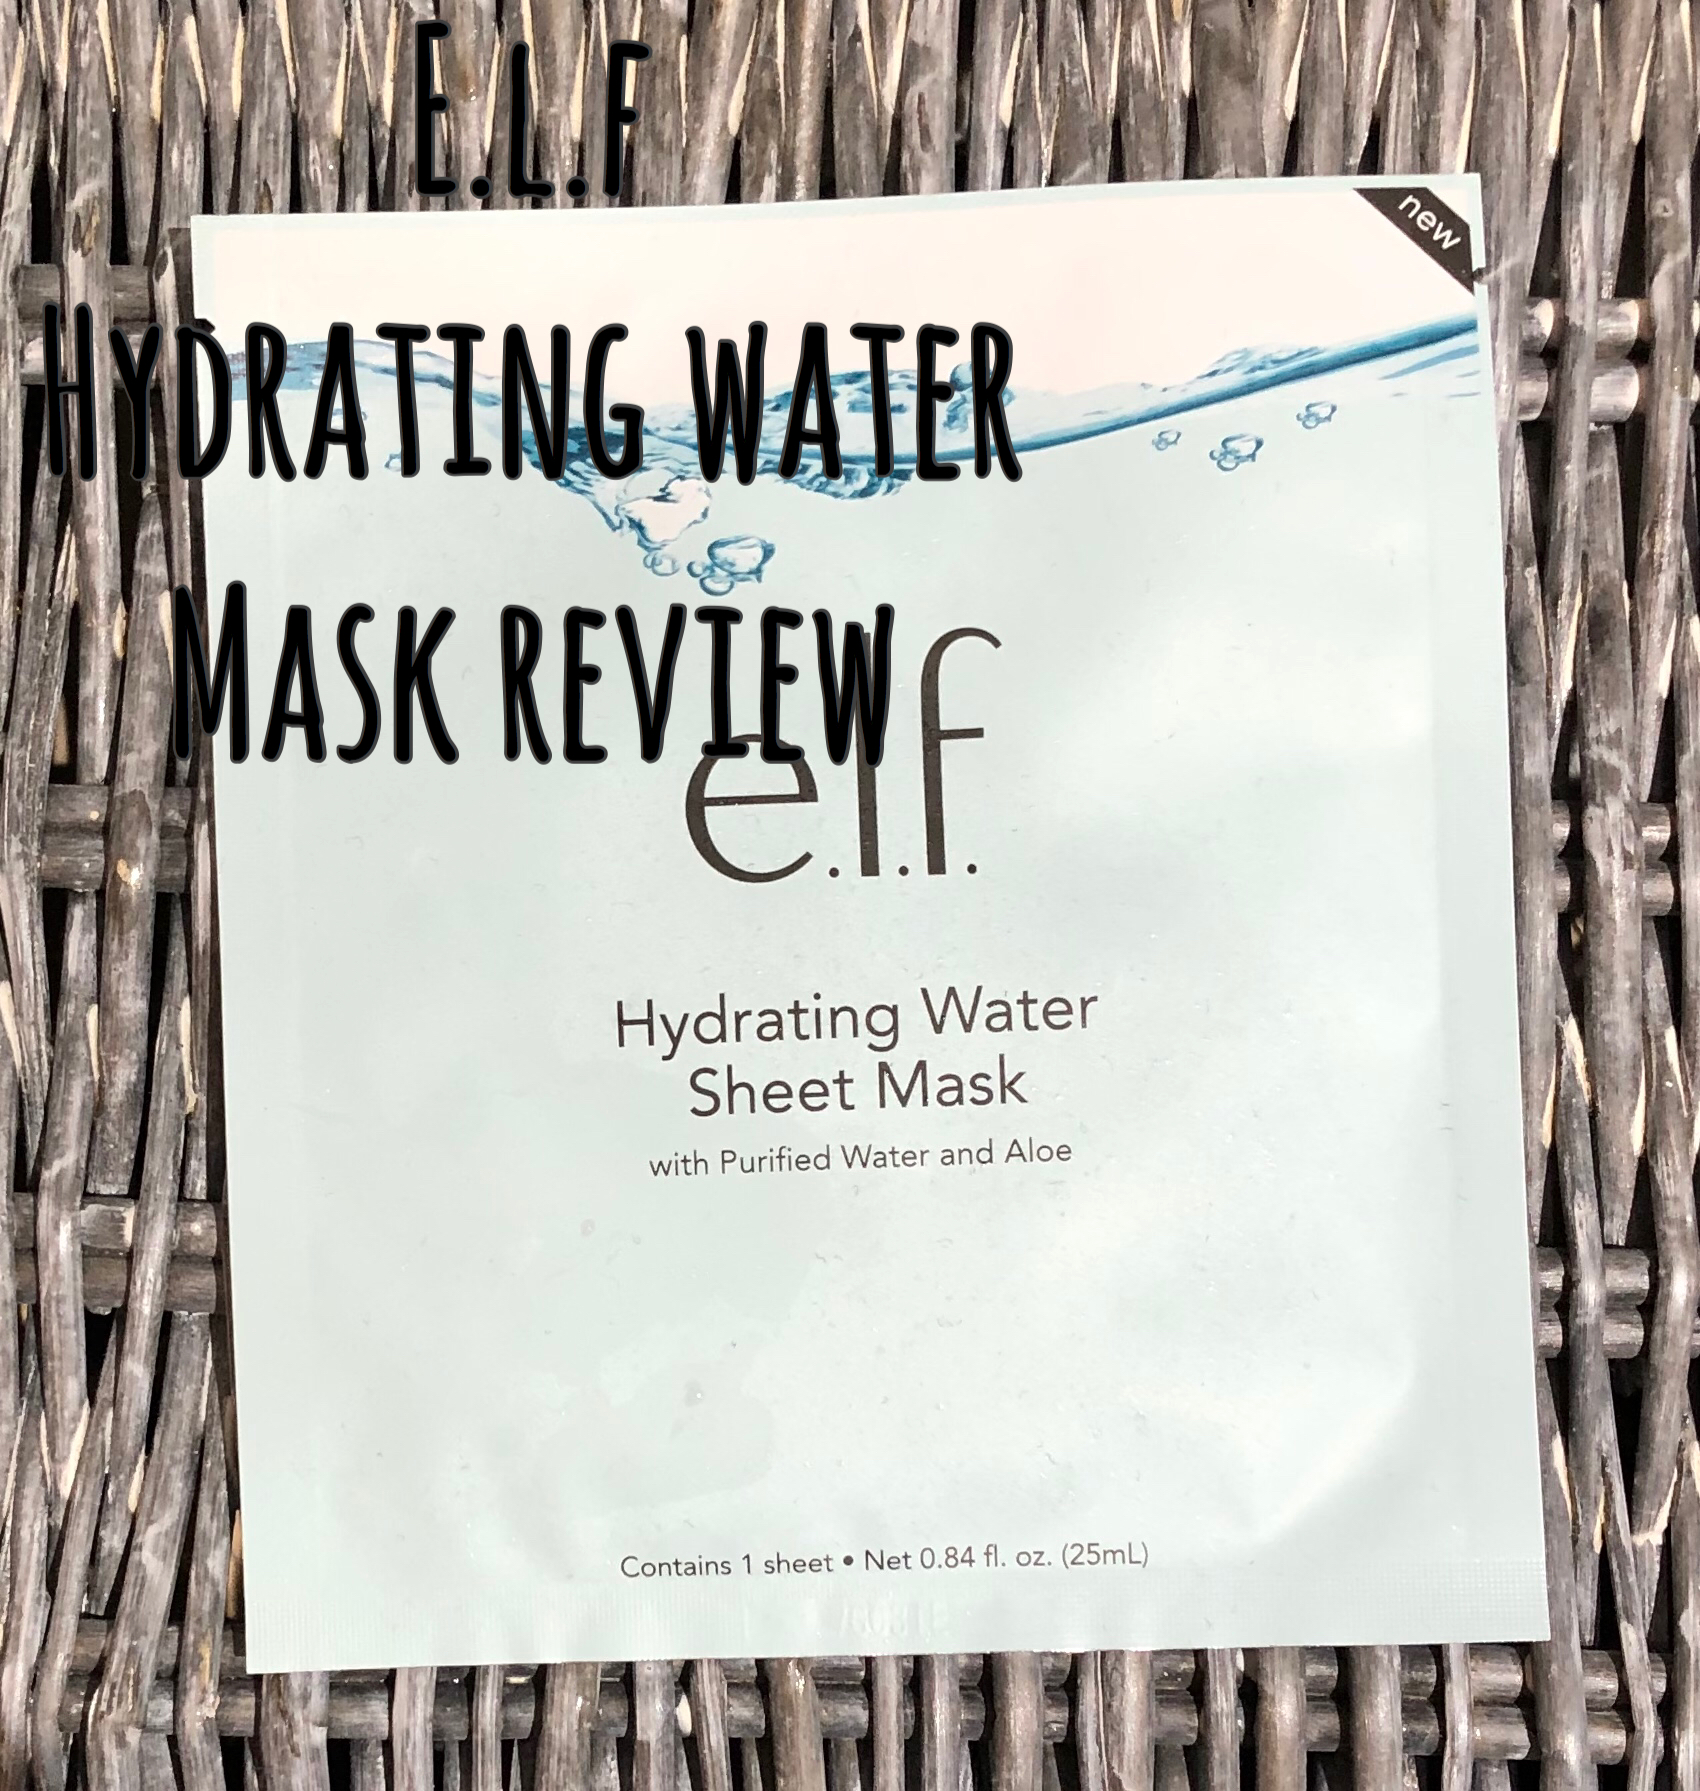 E.L.F Hydrating Water Mask Review graphic